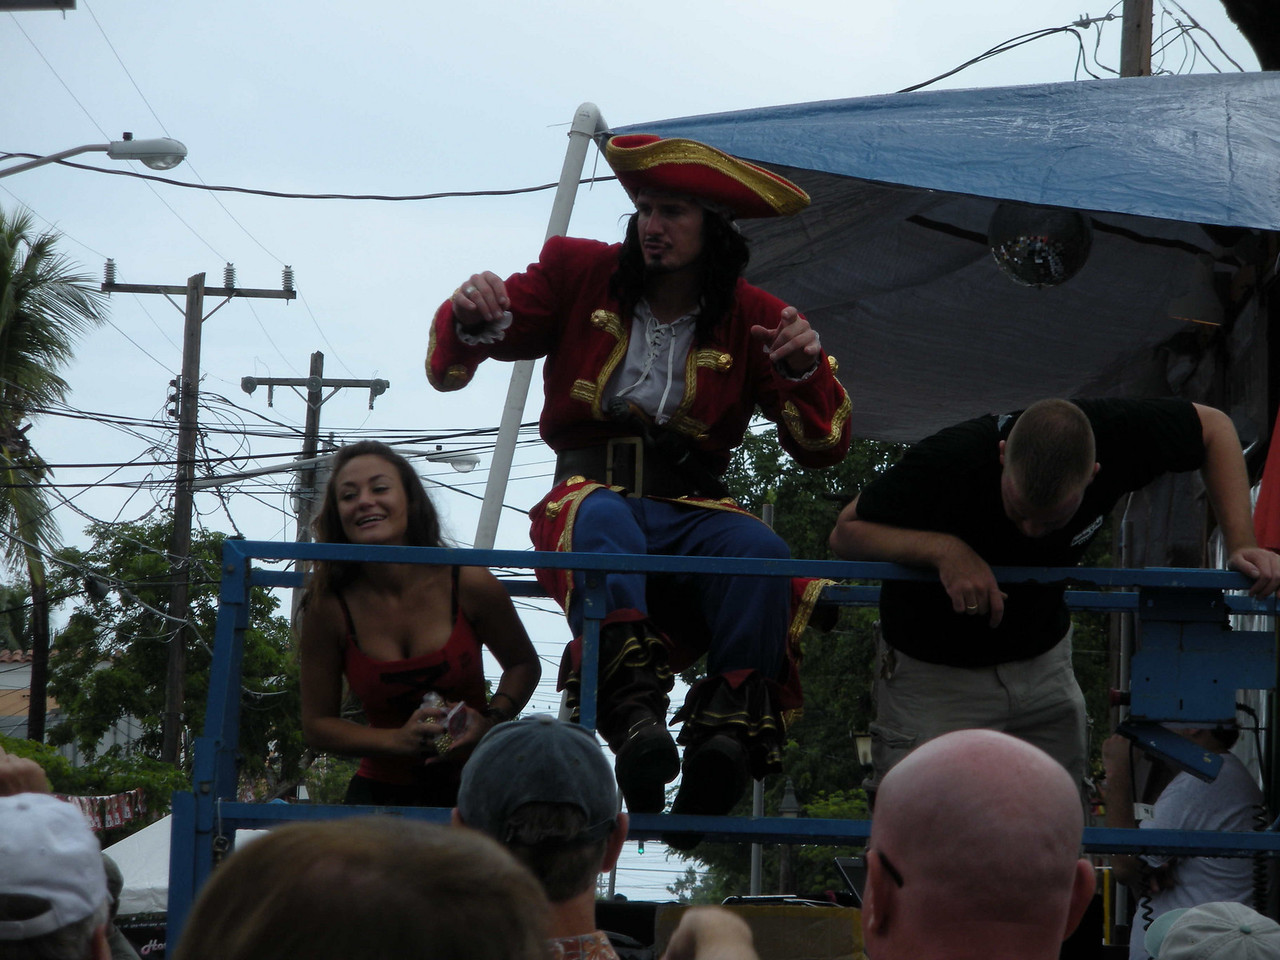 Captain Morgan rum seems to be a big sponsor of Fantasy Fest. It was hot and muggy, and we really felt for this guy who was _very_ active and walked the street posing for photos with people and being very good humored.